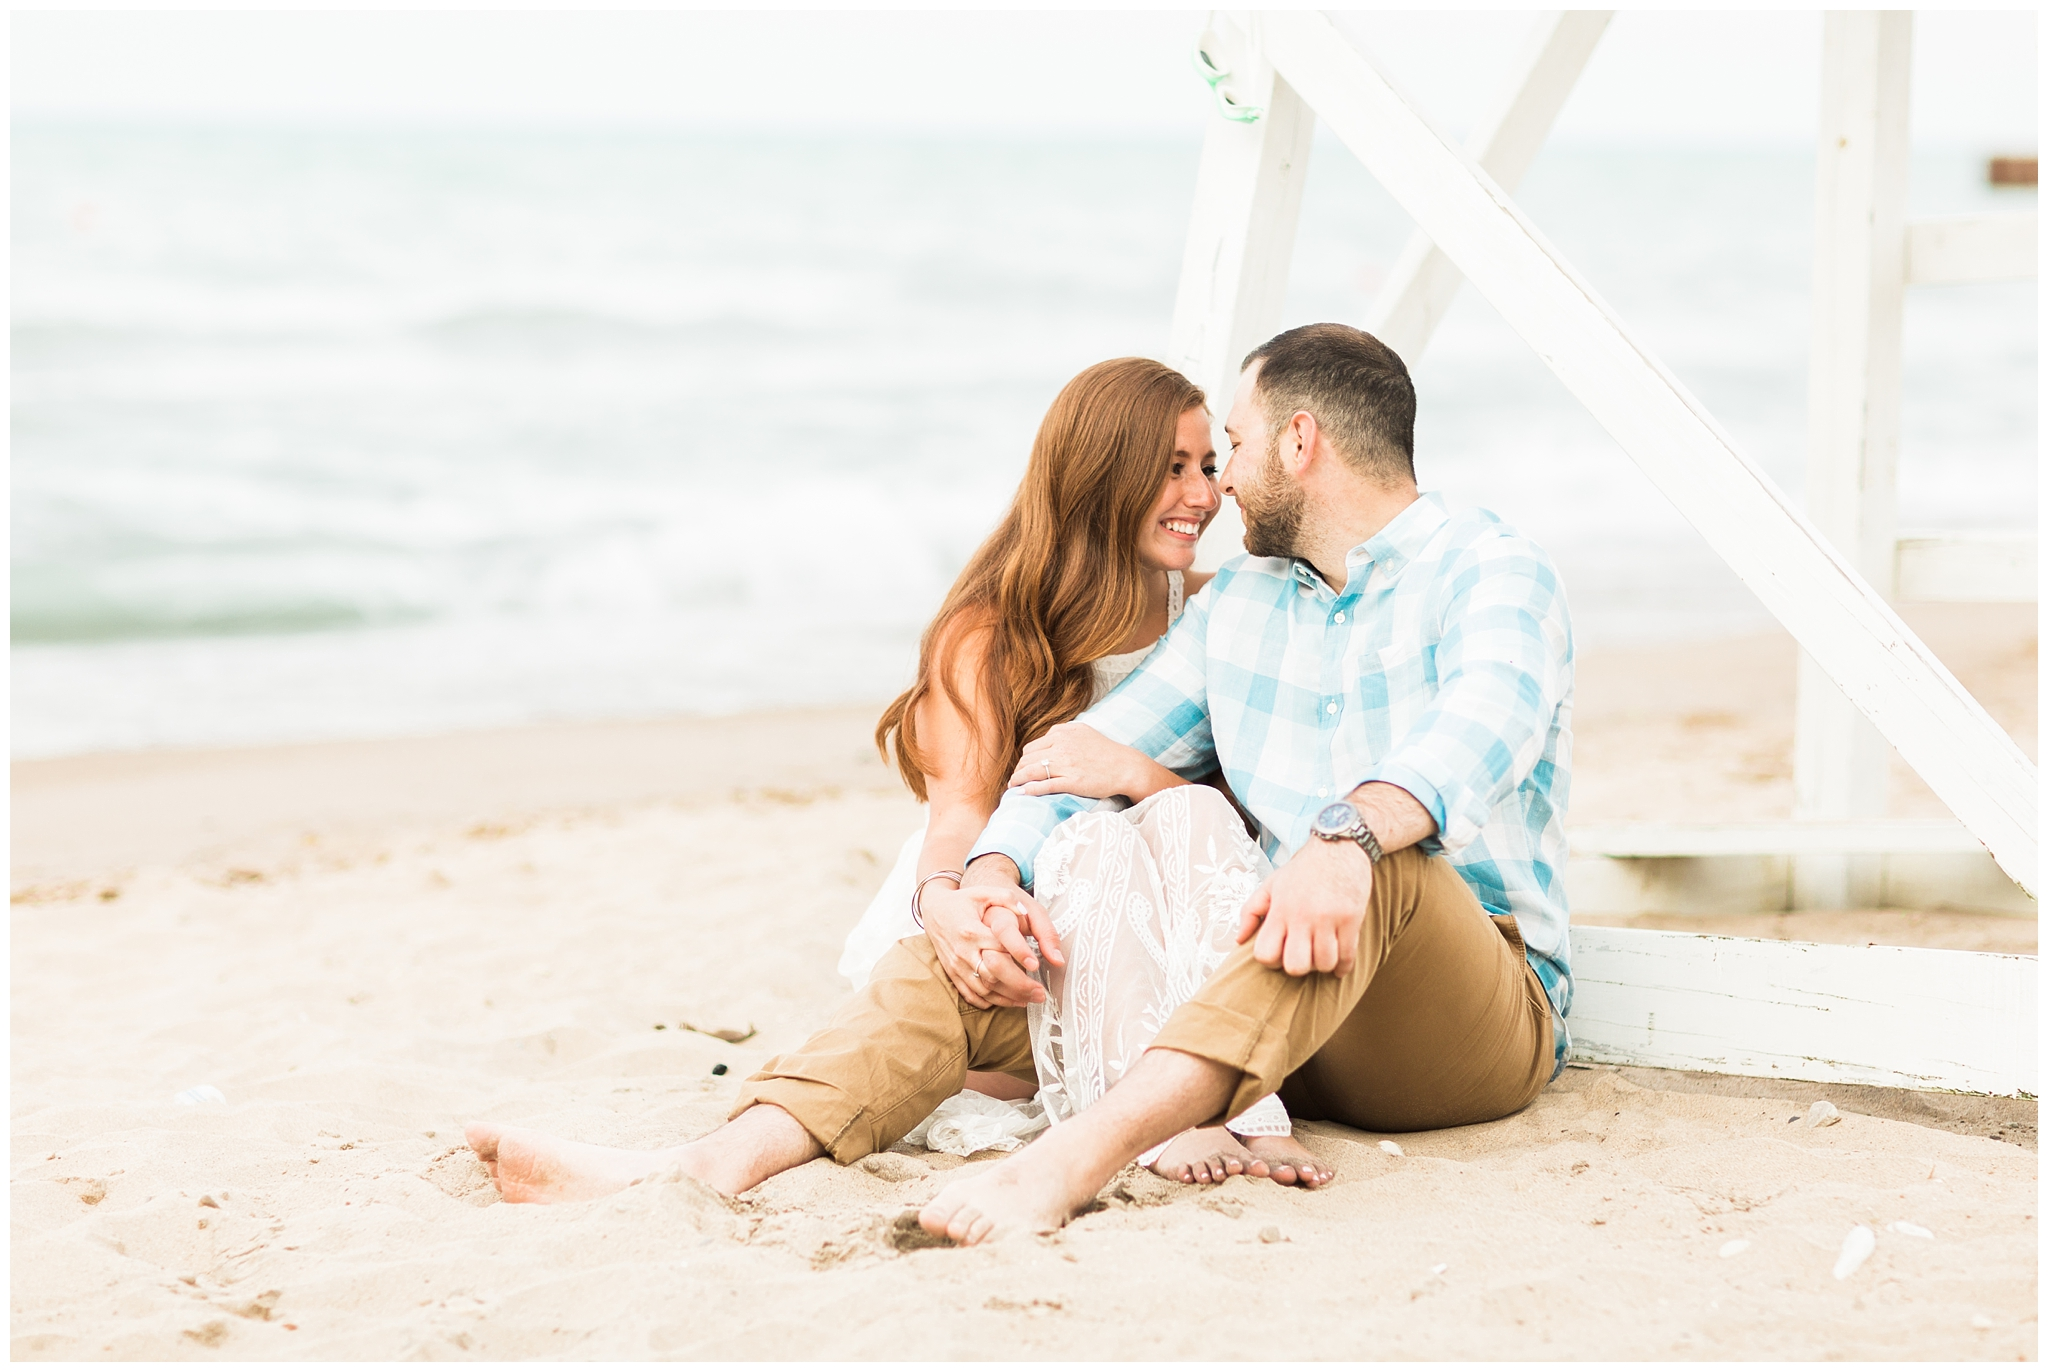 RebeccaHaleyPhotography_chicagoengagementsession_lakemichiganengagementsession_coloradoengagementphotographer_evanstonengagementphotographer_lighthousebeach_lighthousebeachengagementsession_0011.jpg